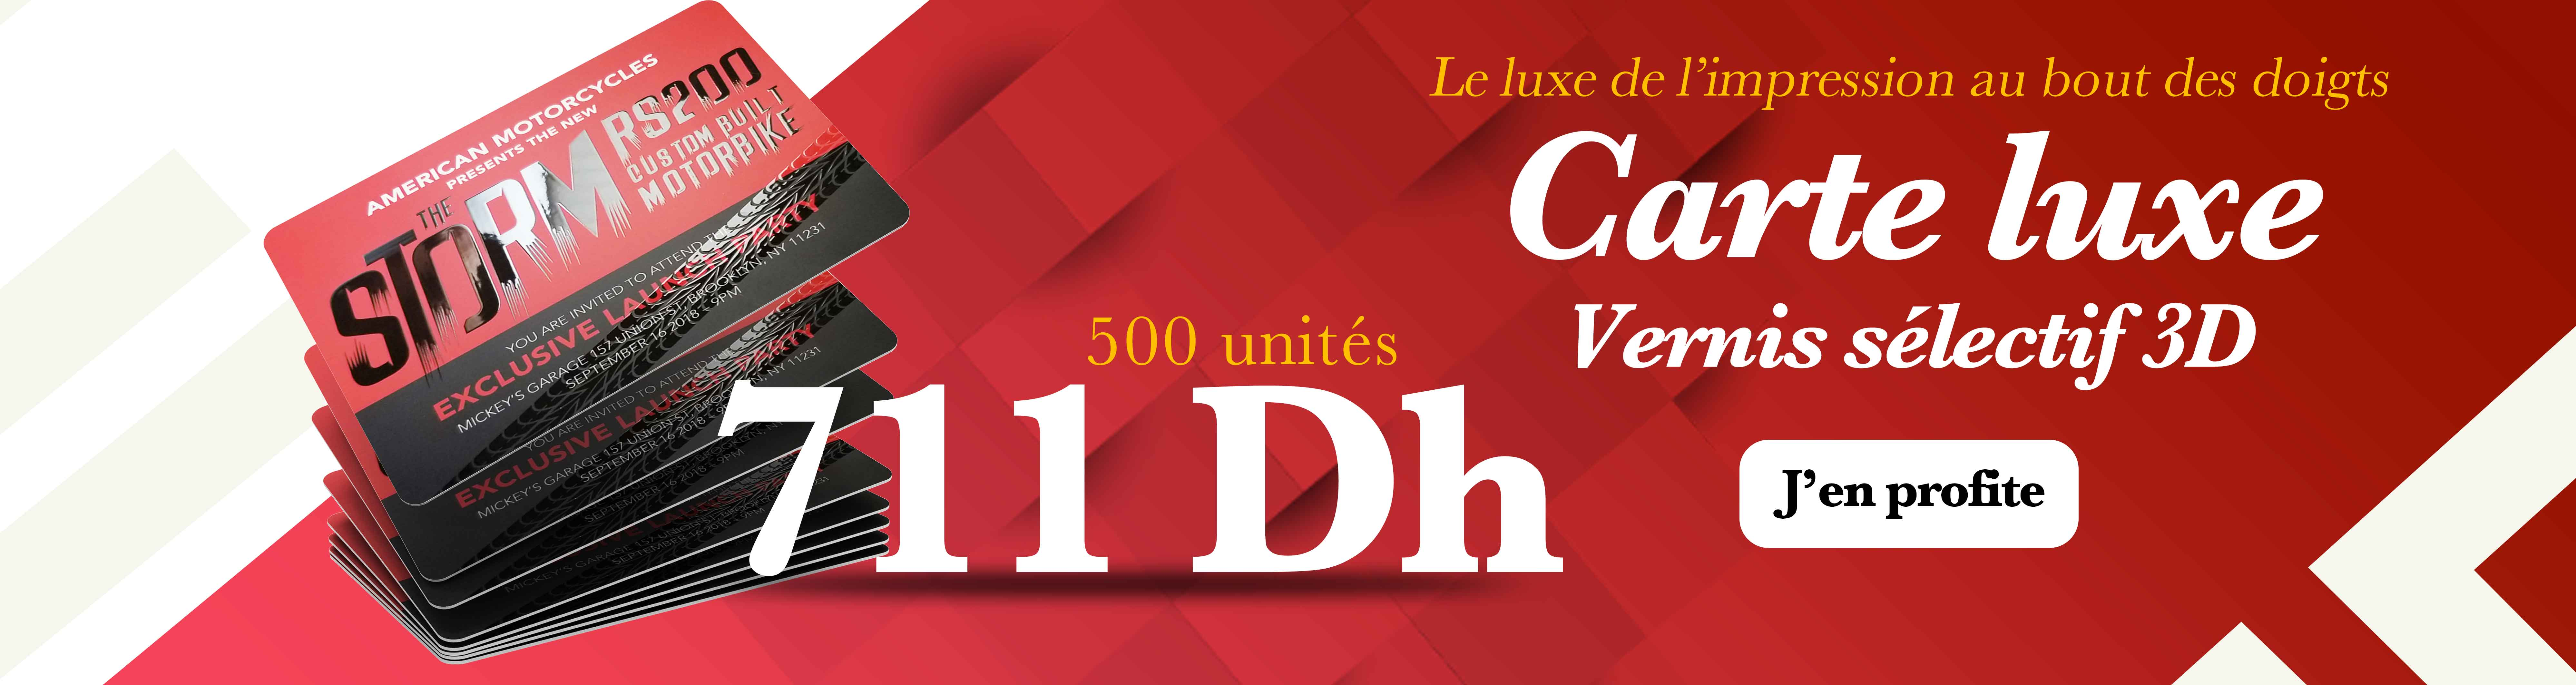 Promotions carte luxe